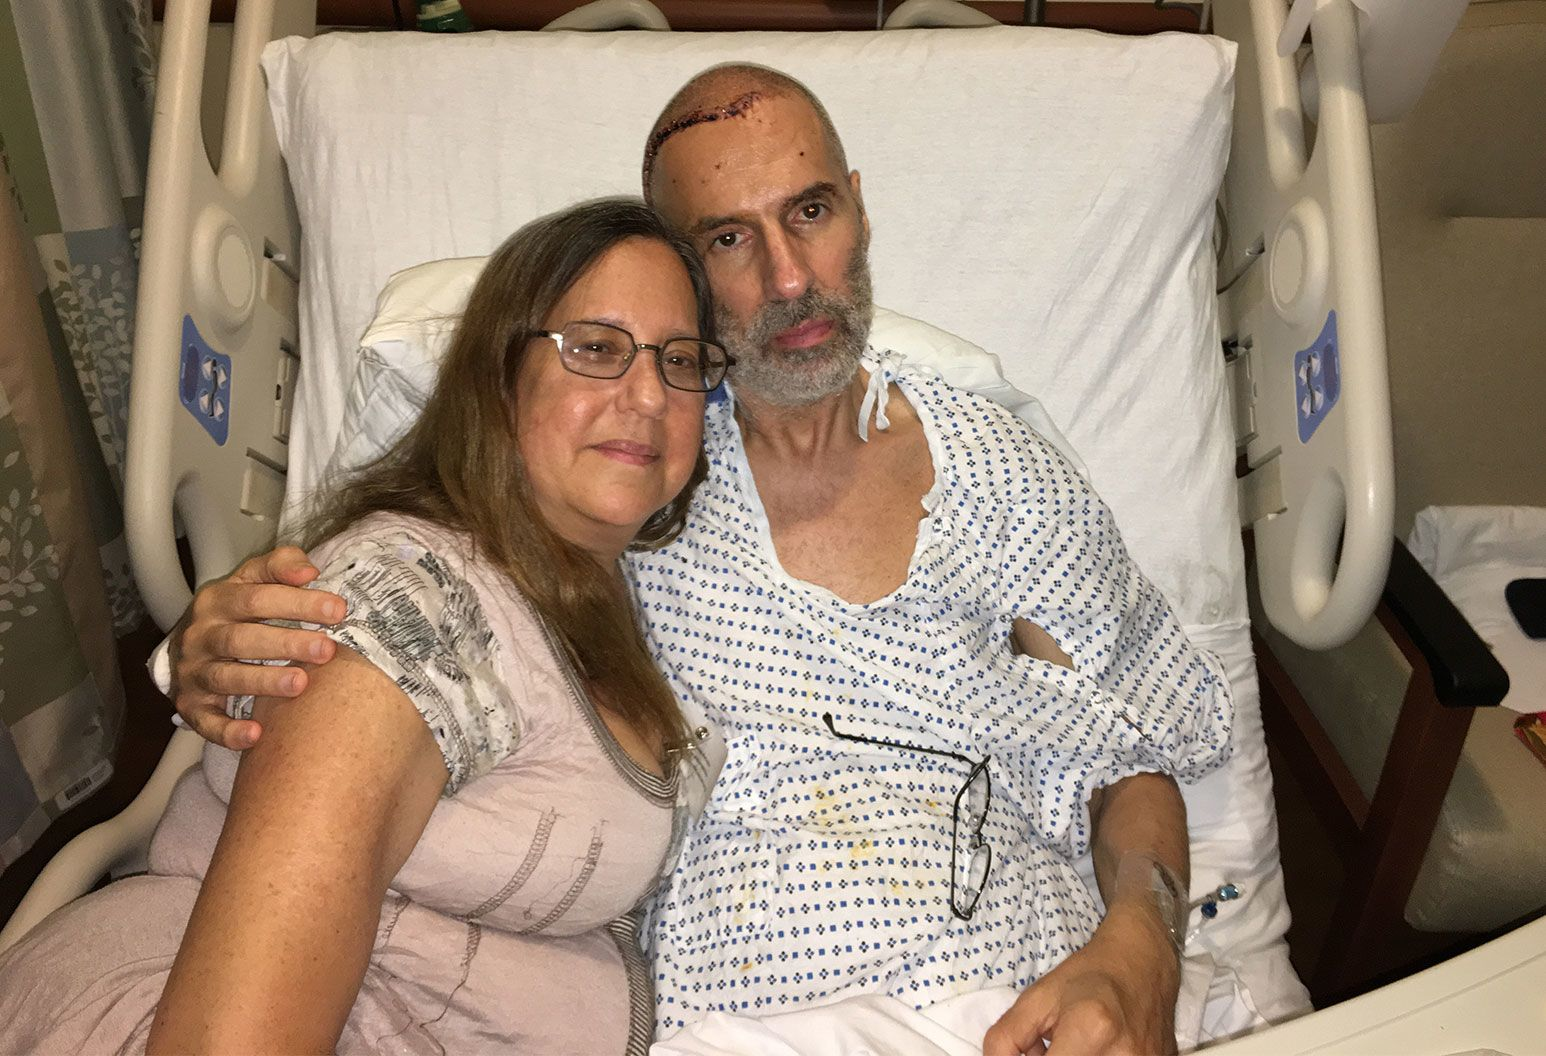 A bearded man sits on a hospital bed next to a woman. He has a shaved head with some red marks along the hair line and a grey beard. A woman sitting next to him smiles as he has his arm around her shoulder.